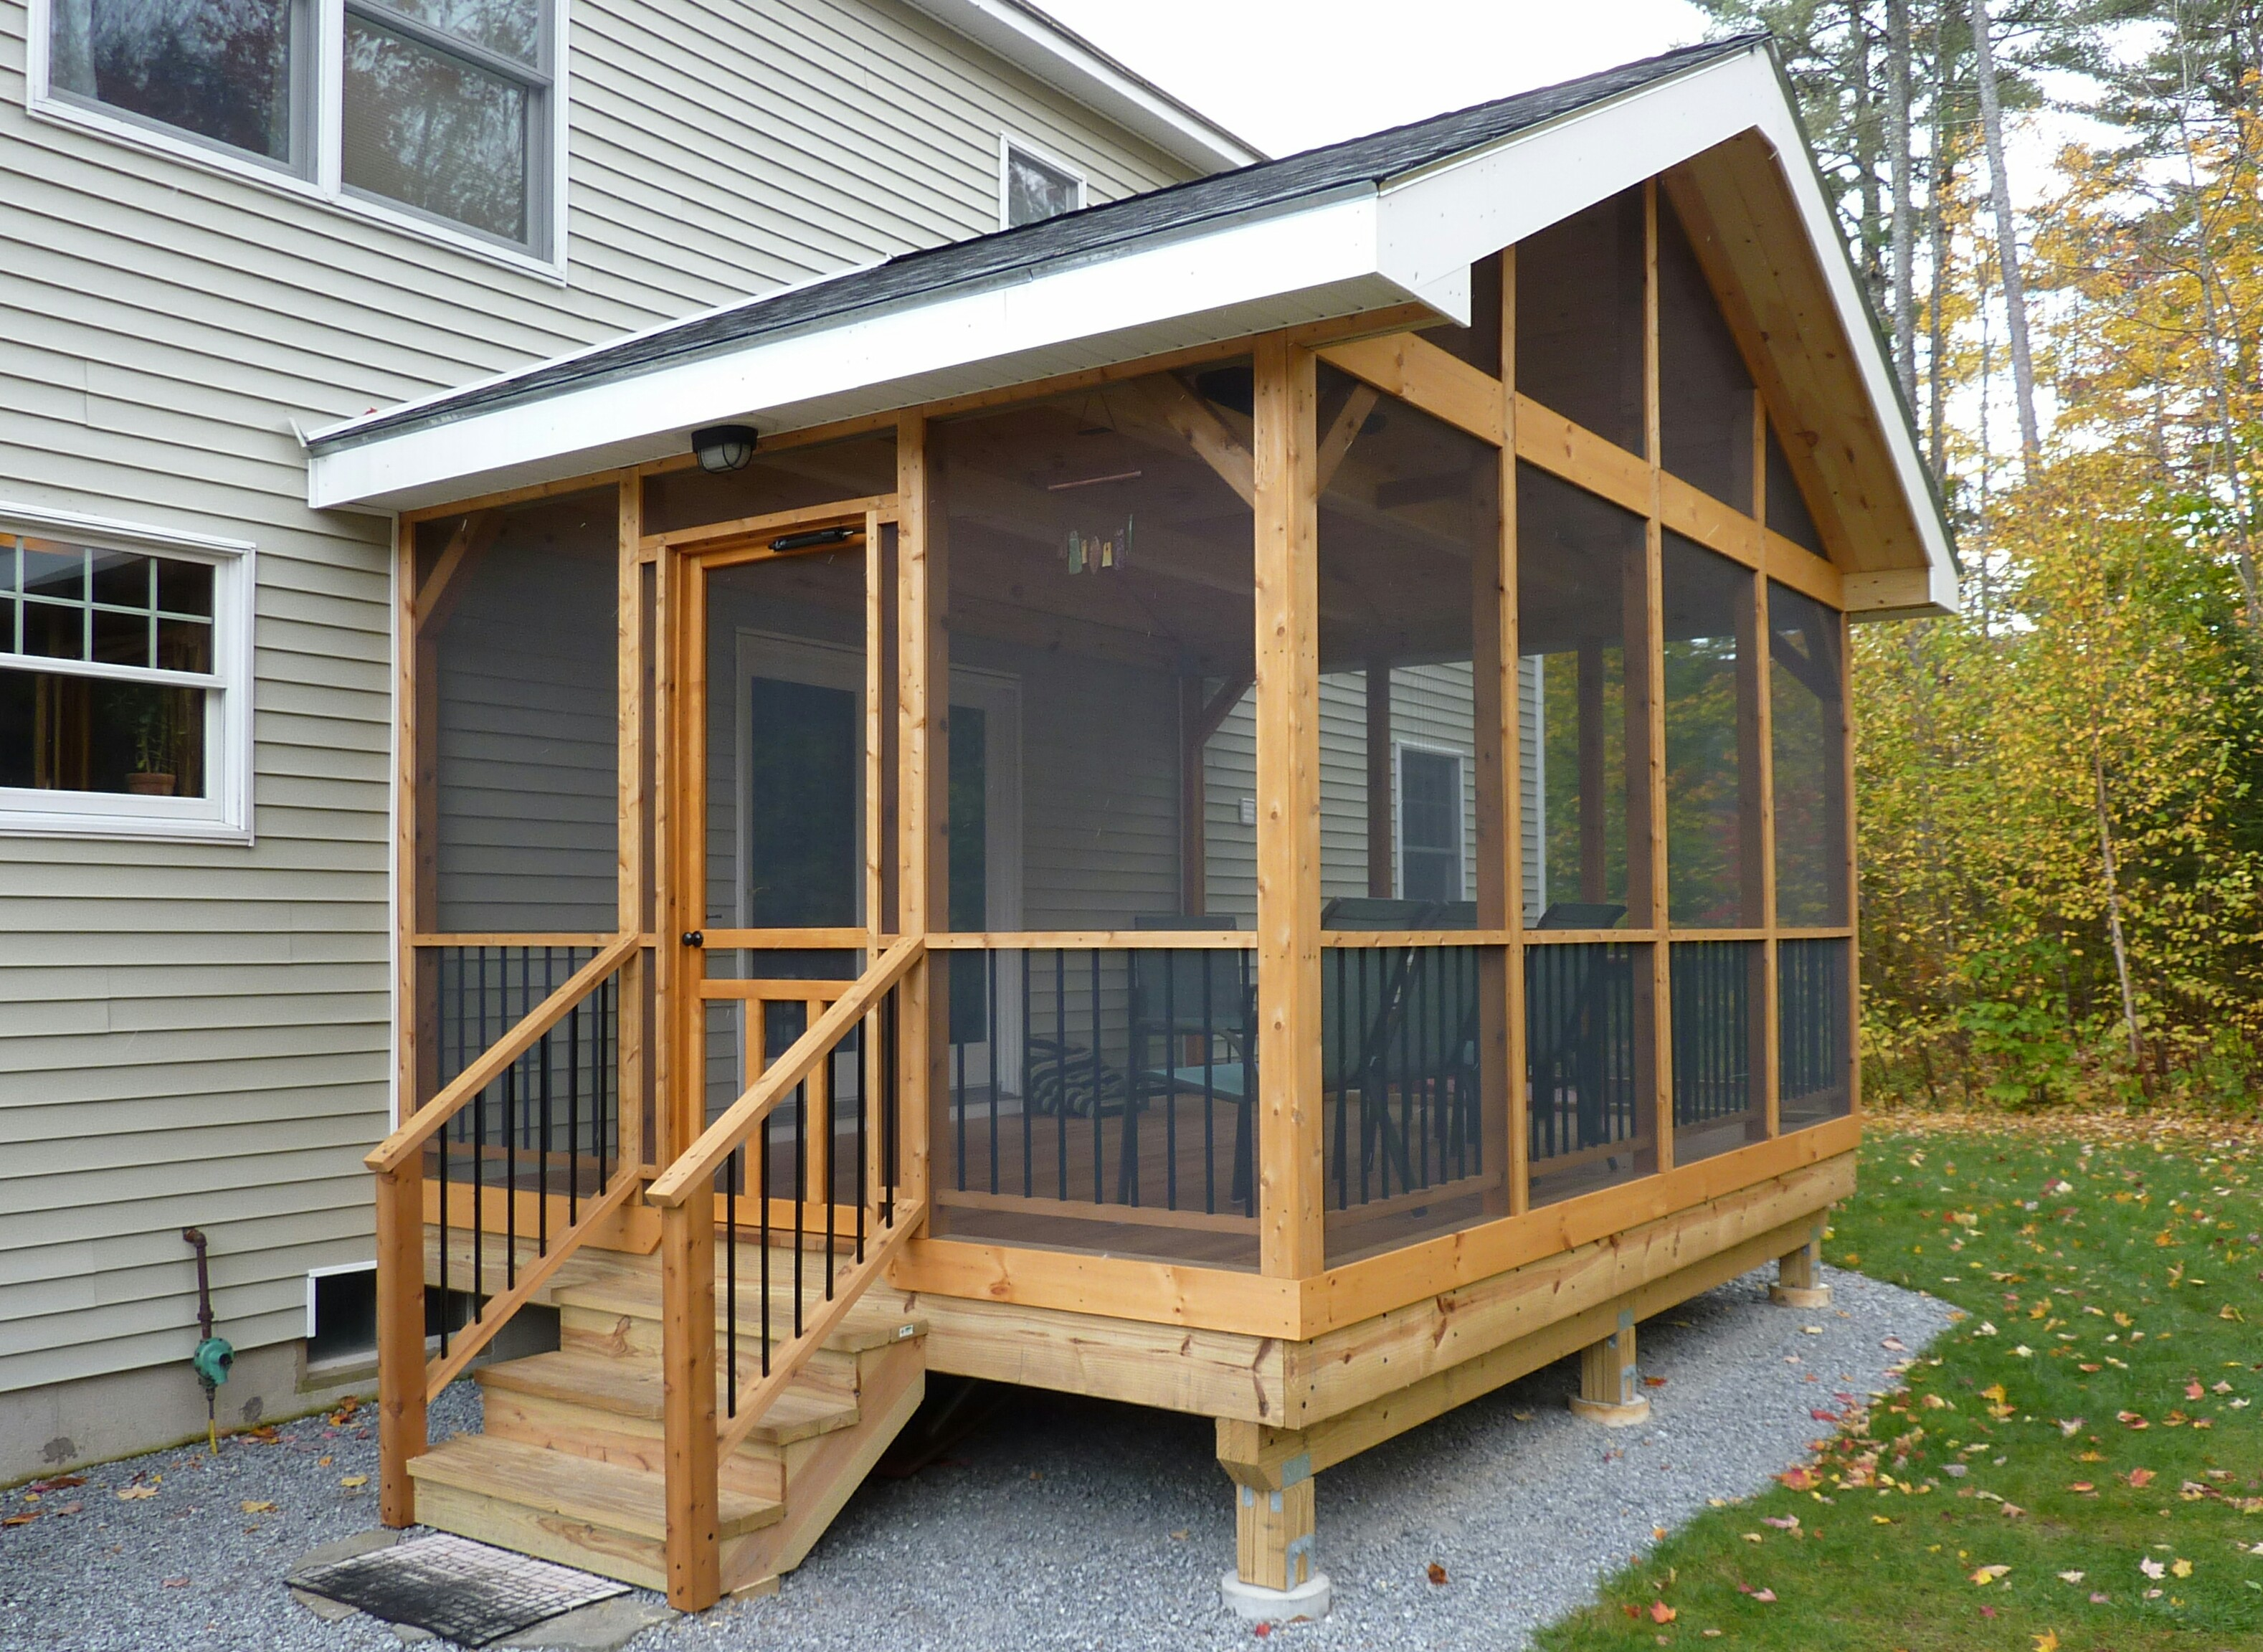 15 diy screened in porch learn how to screen in a porch for Building a front porch deck